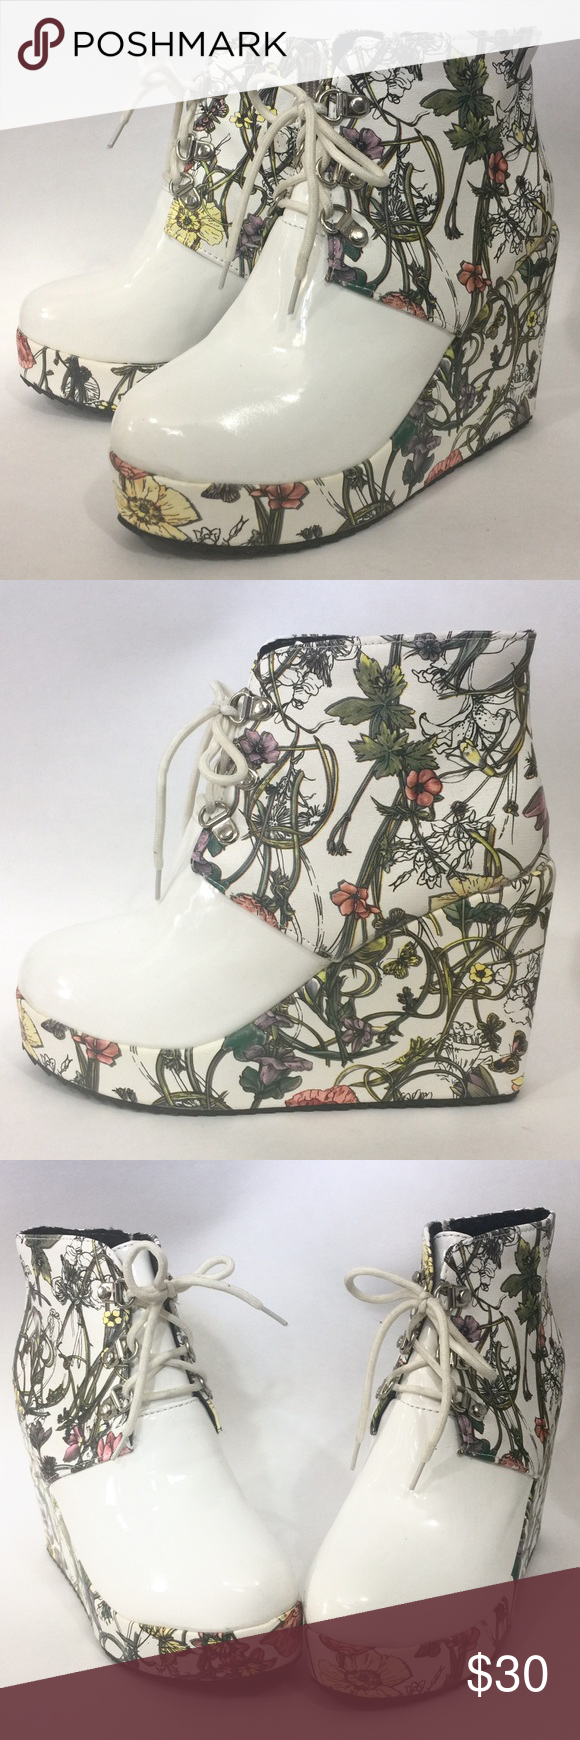 white floral platform ankle booties I love these shoes but sadly they are too small. Marked a euro size 40, but fits like a US size 7.5 - 8. Awesome and comfy platform detailed with a pretty floral motif and white faux patent leather. Laces in the front and zips on the inside for easy on and off. Never been worn! Tags: costume, Halloween, cosplay, Japanese, poison ivy, vegan Shoes Platforms